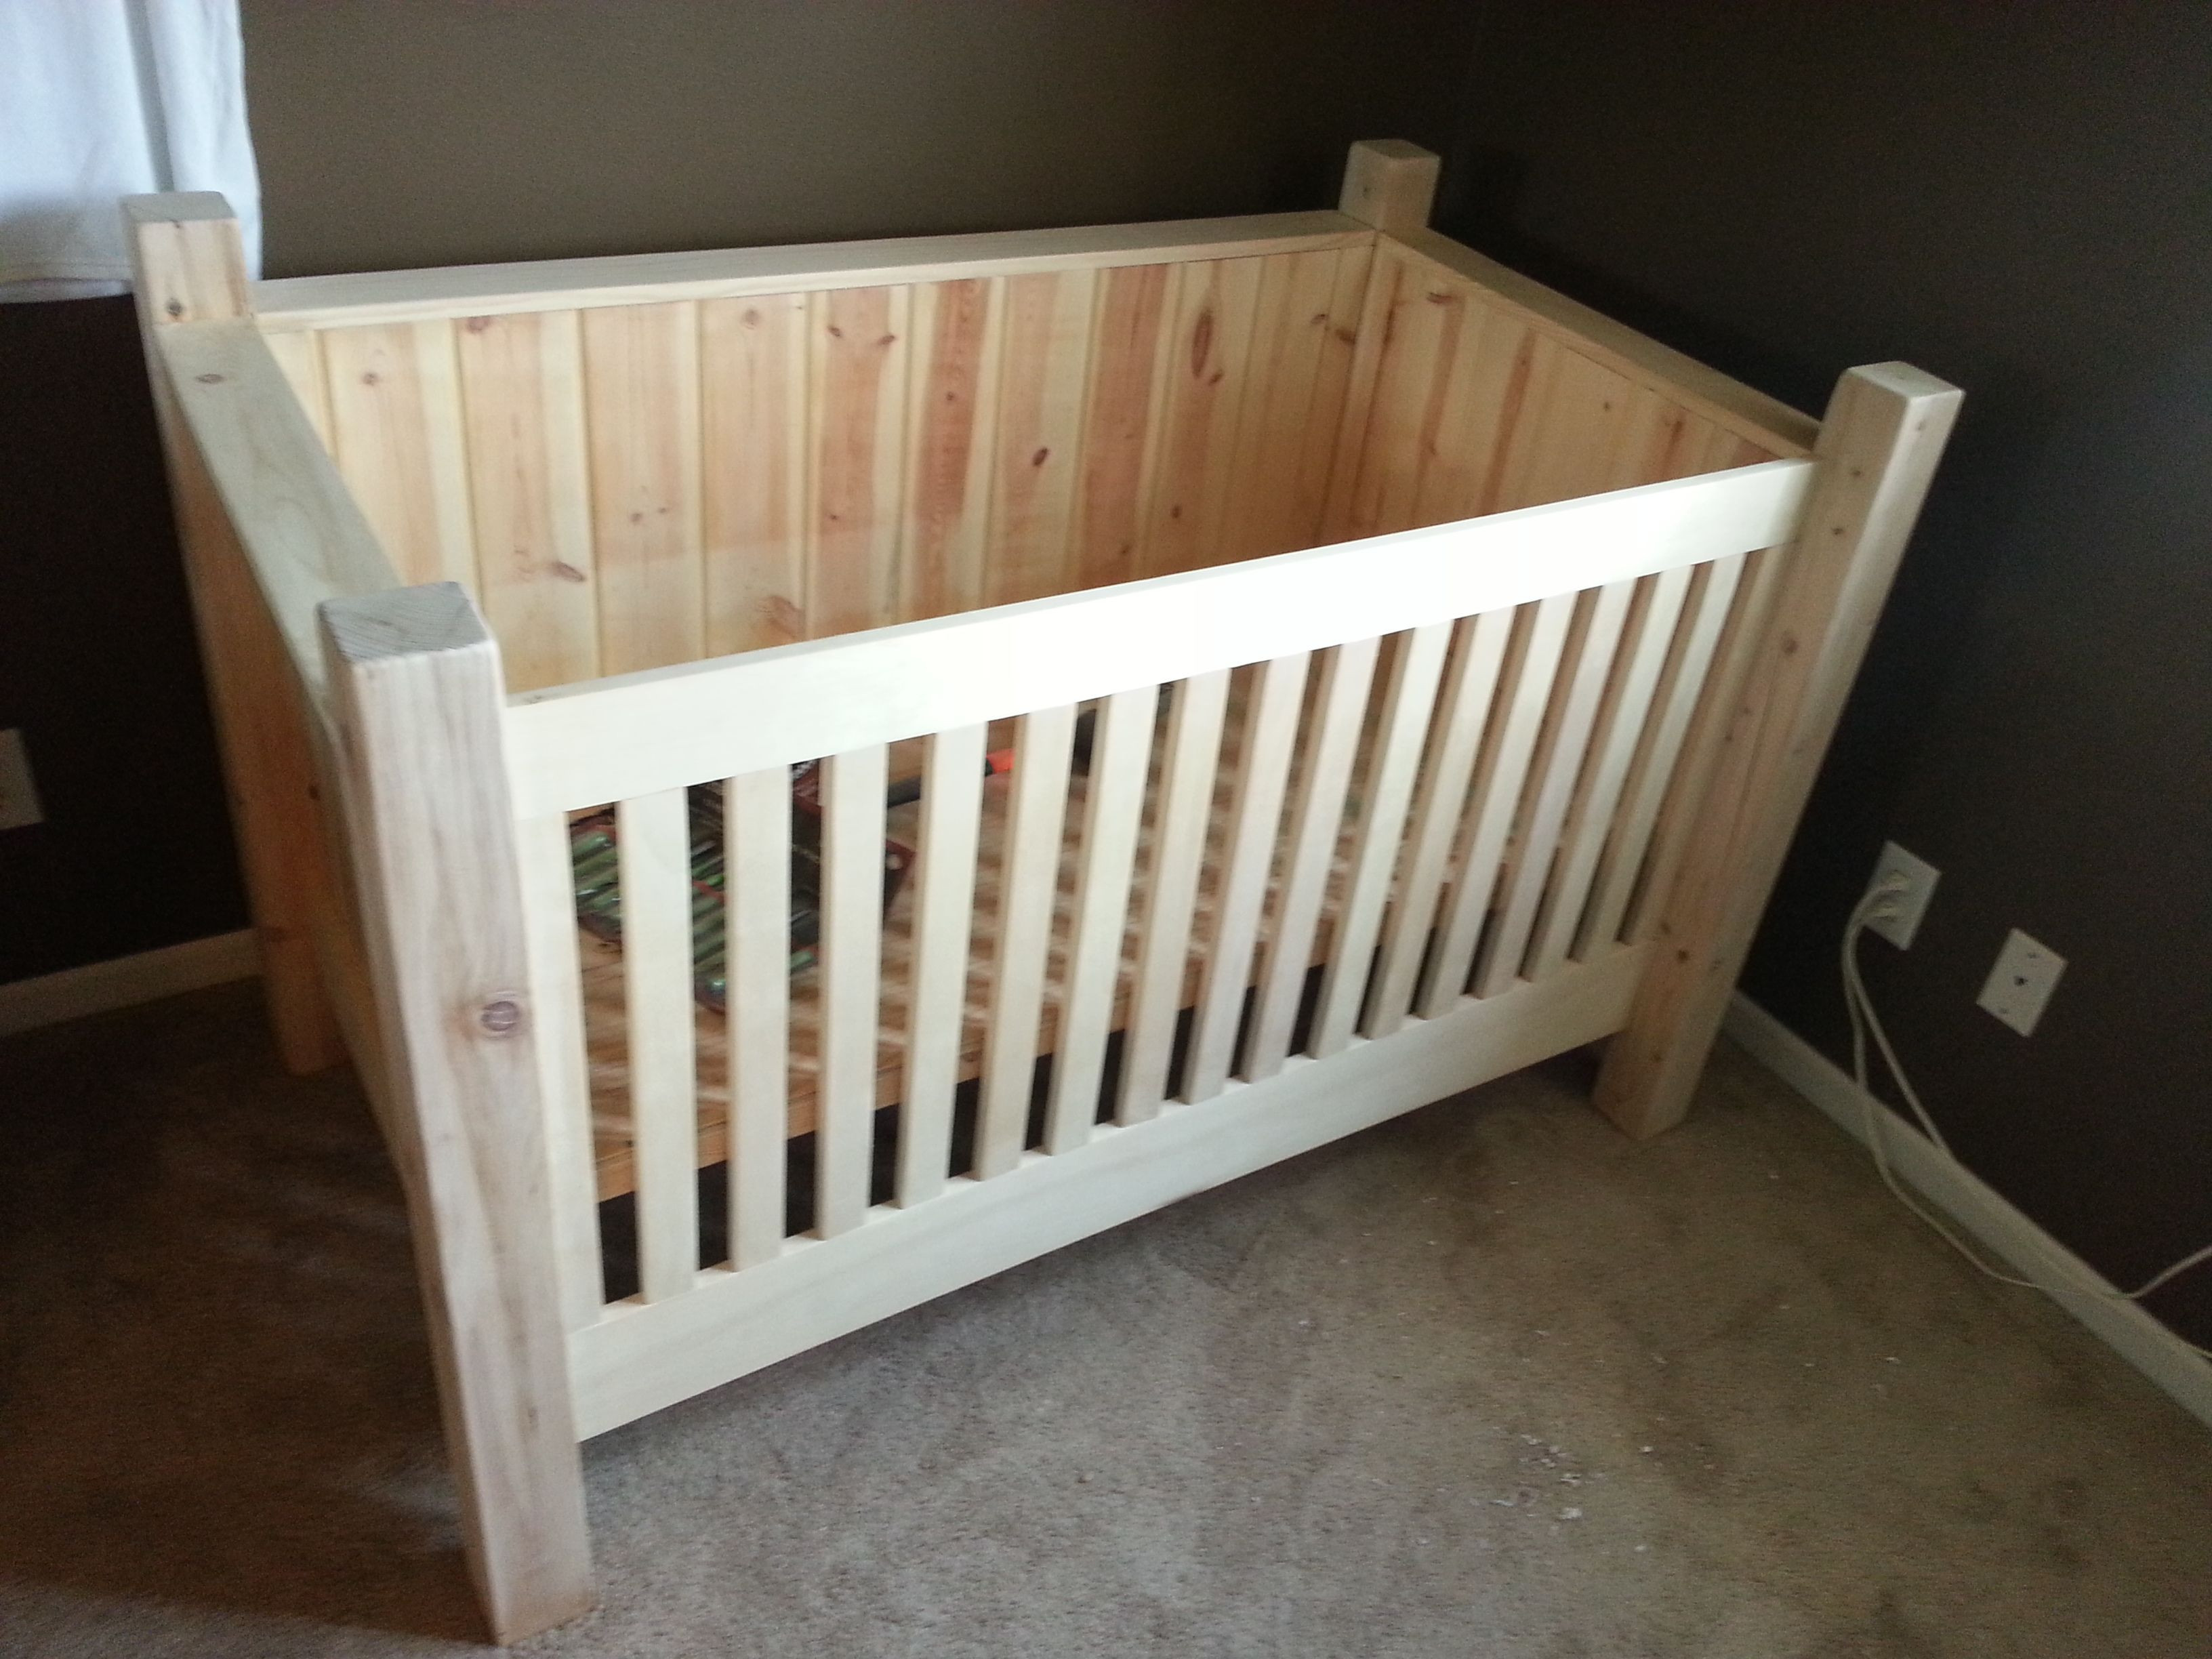 Best ideas about DIY Baby Cribs . Save or Pin DIY Wood Crib This is another option if doing all tree Now.